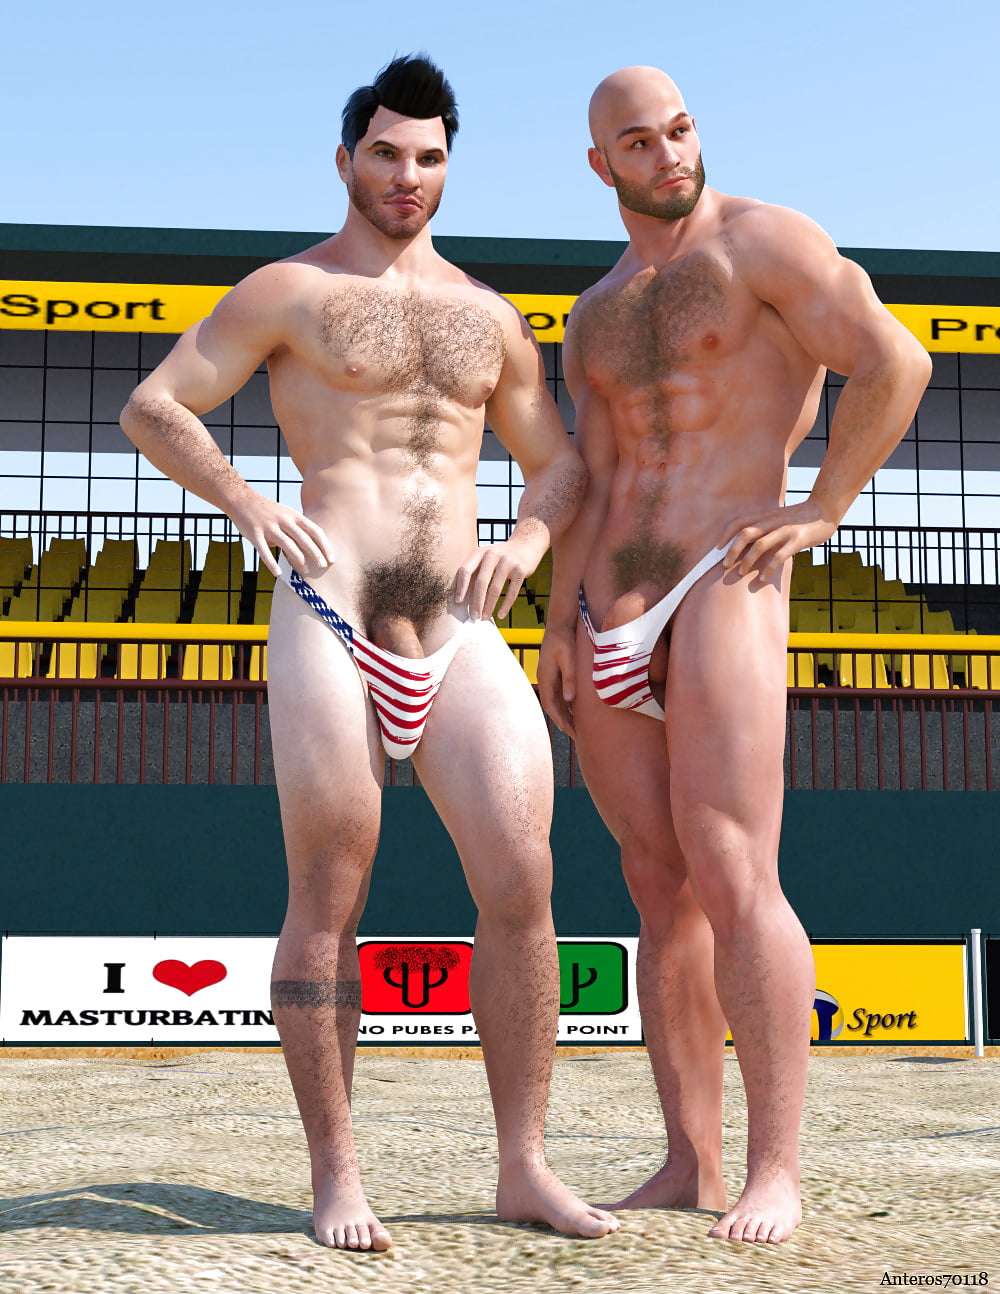 beach-volleyball-nude-man